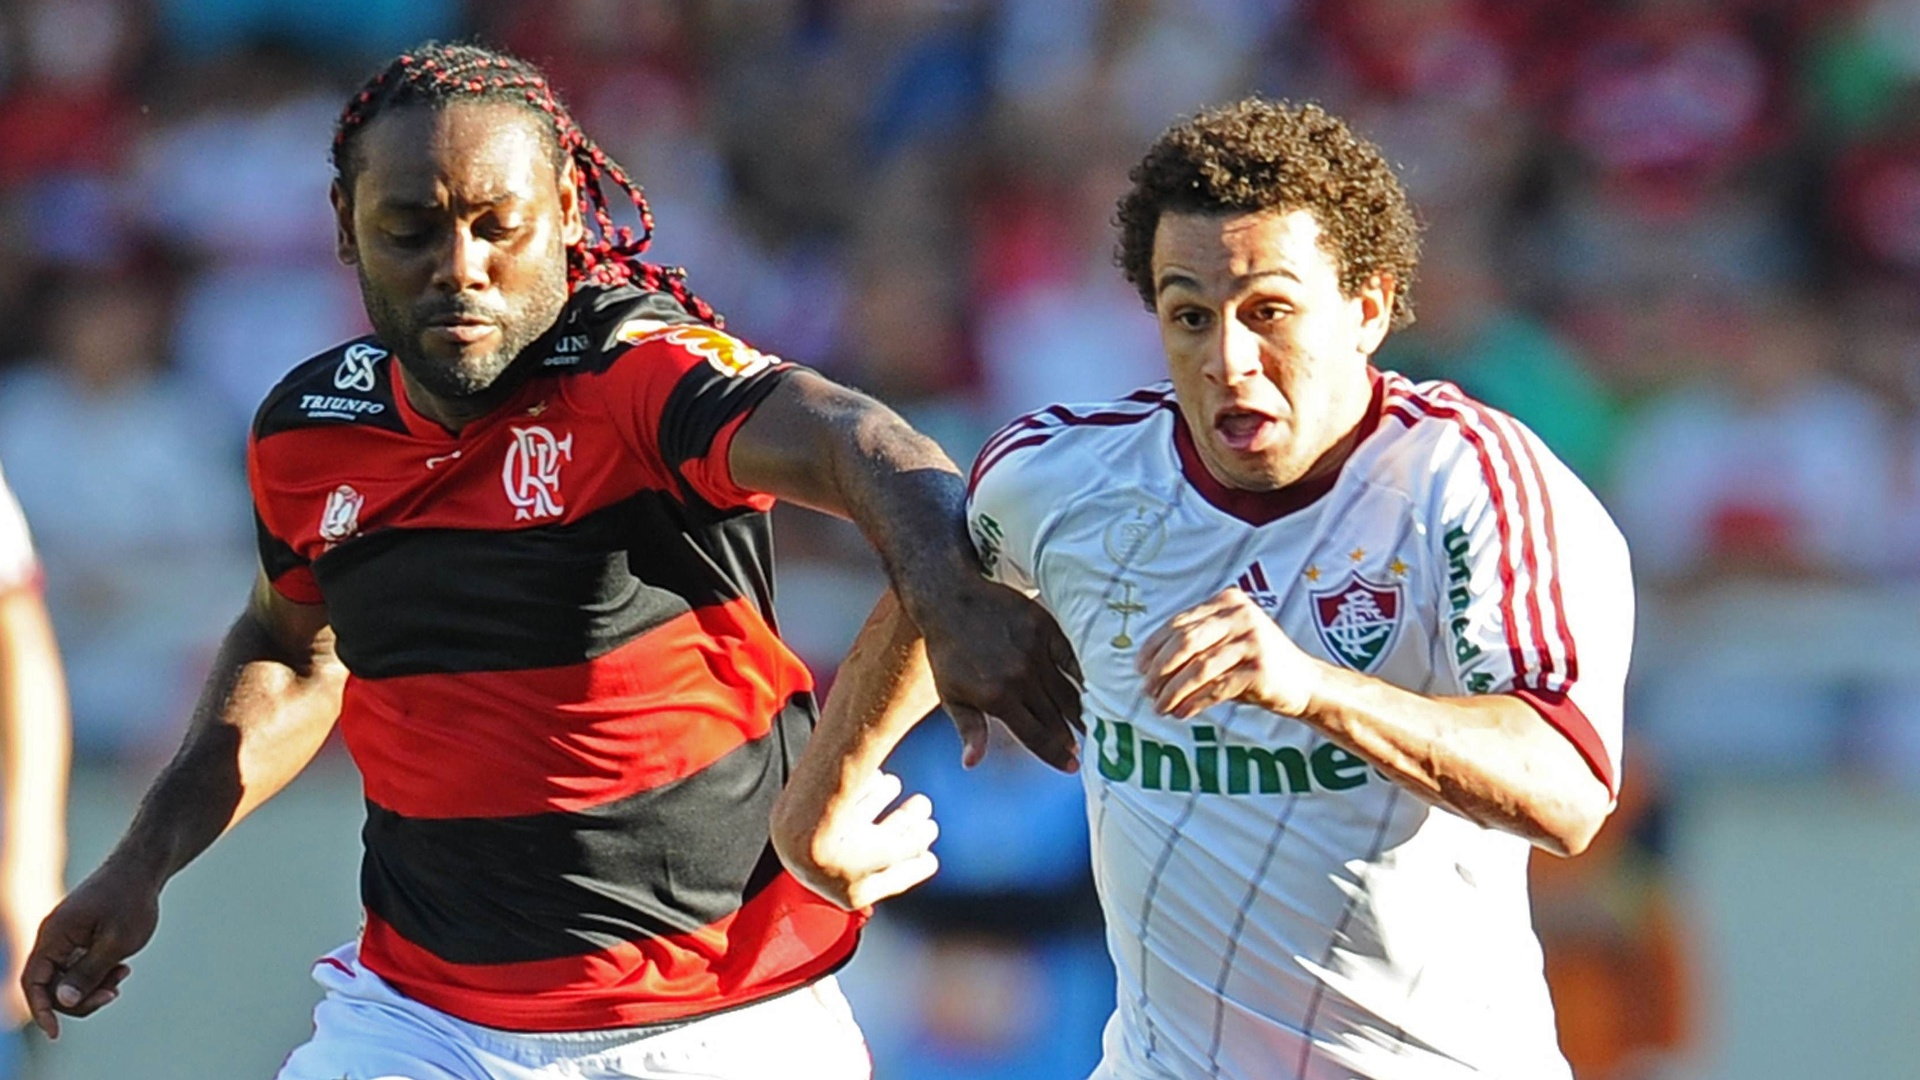 Vagner Love tenta roubar a bola de Wellington Nem no clssico entre Flamengo e Fluminense, pela 27 rodada do Brasileiro